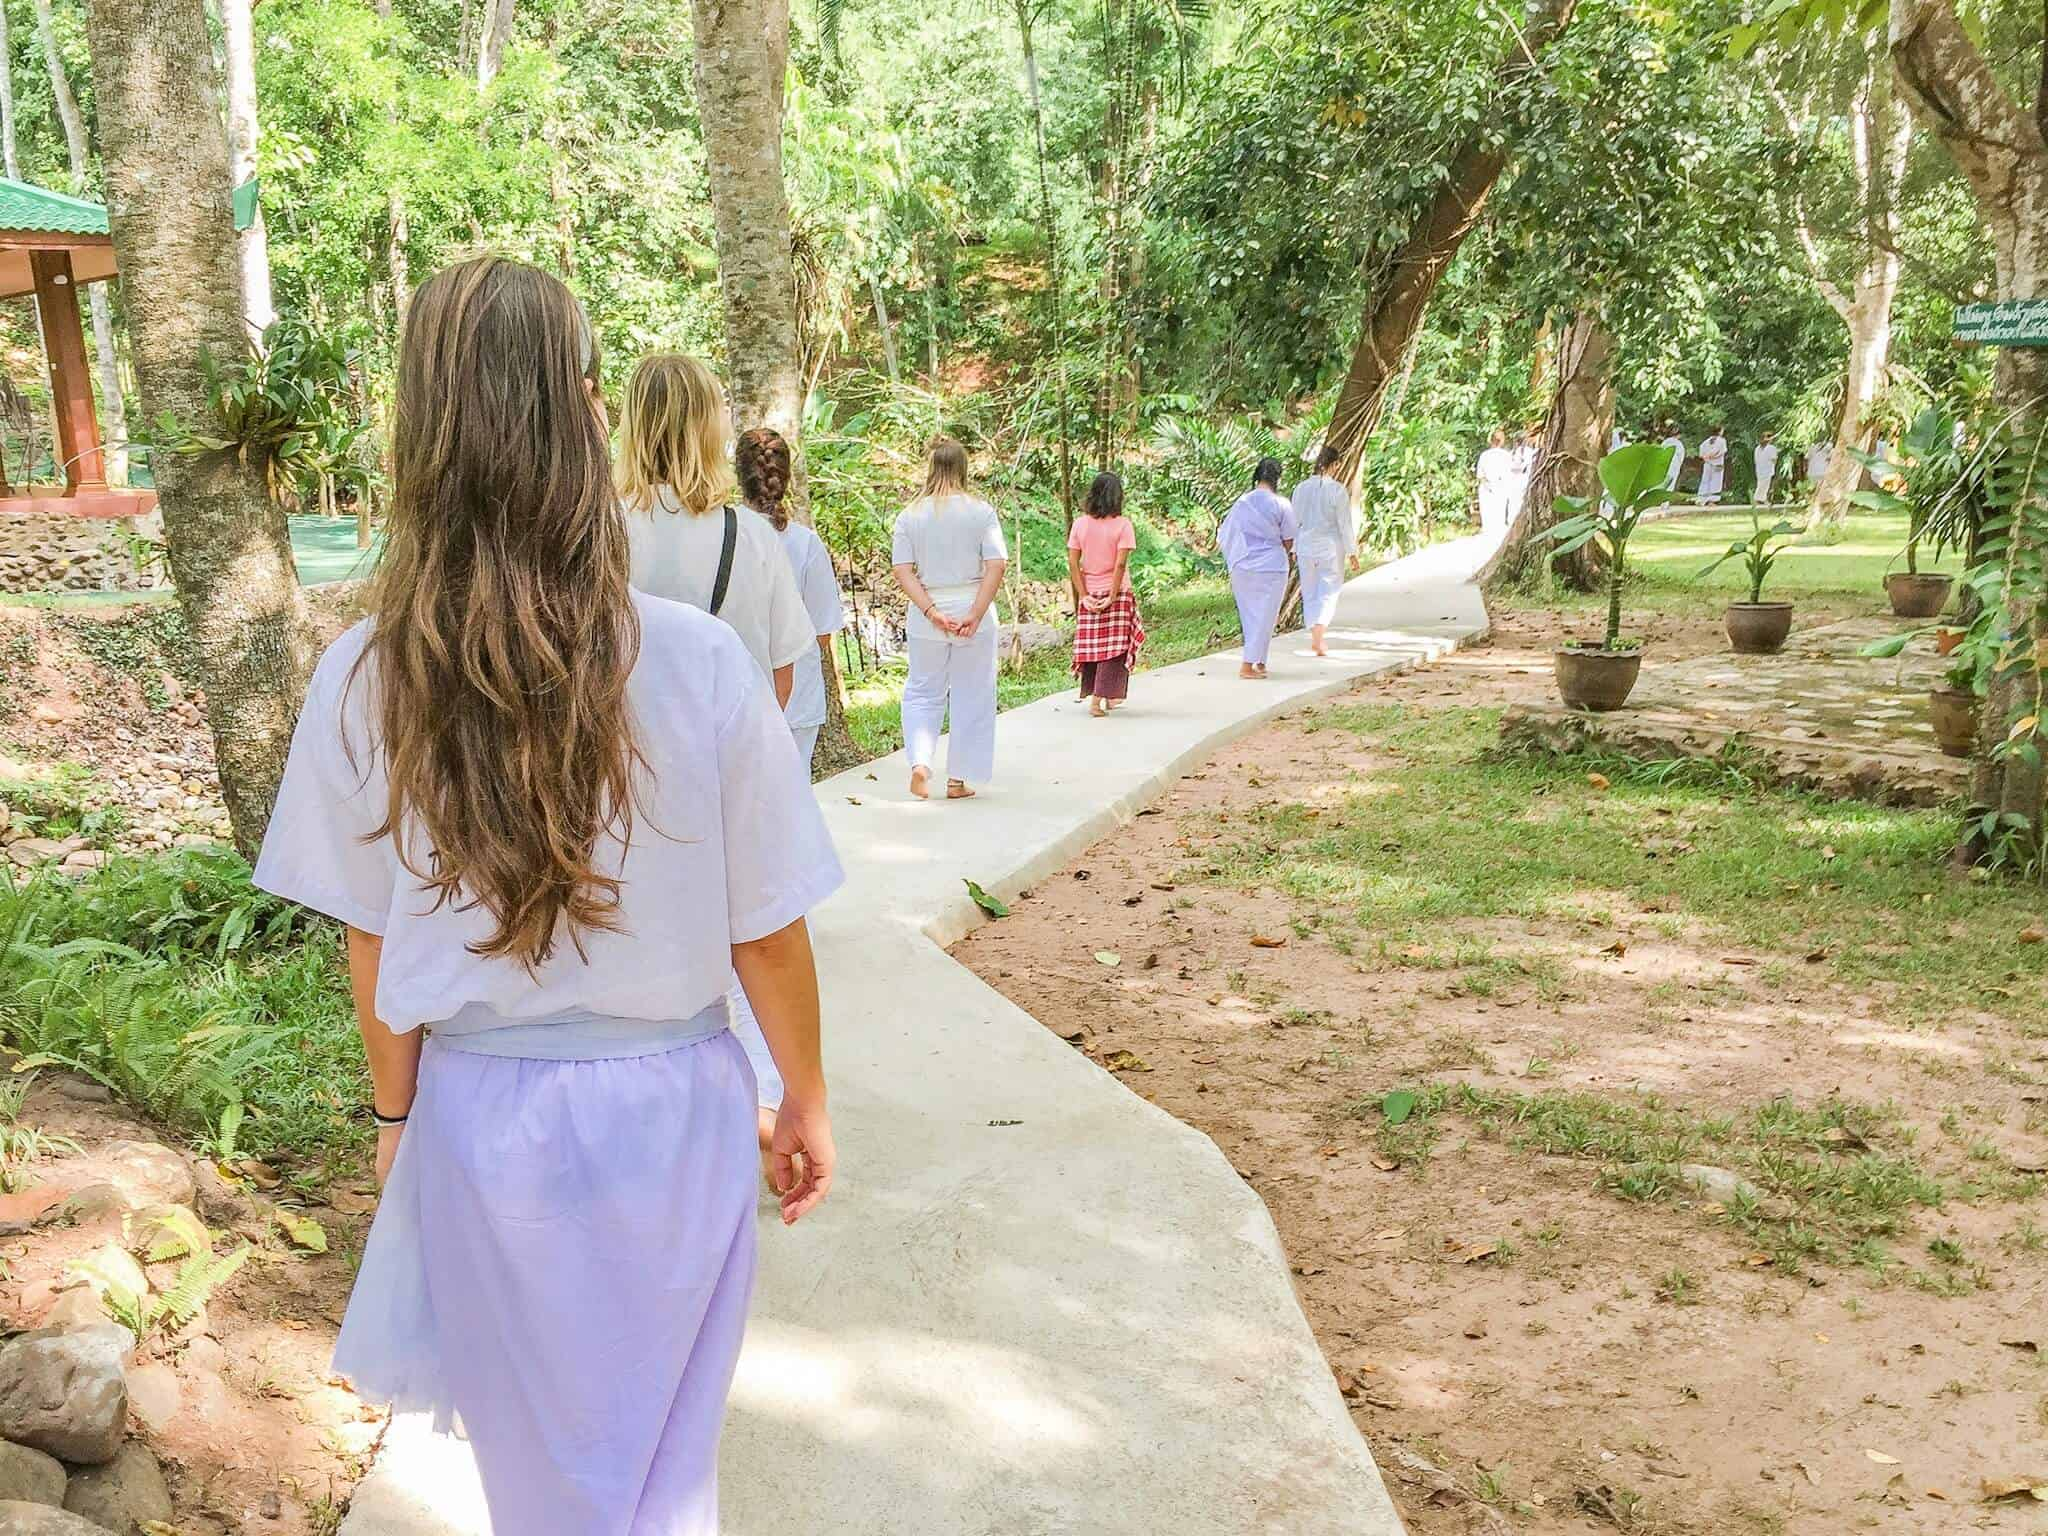 Walking Meditation im Wat Pa Tam Wua Forest Monastery